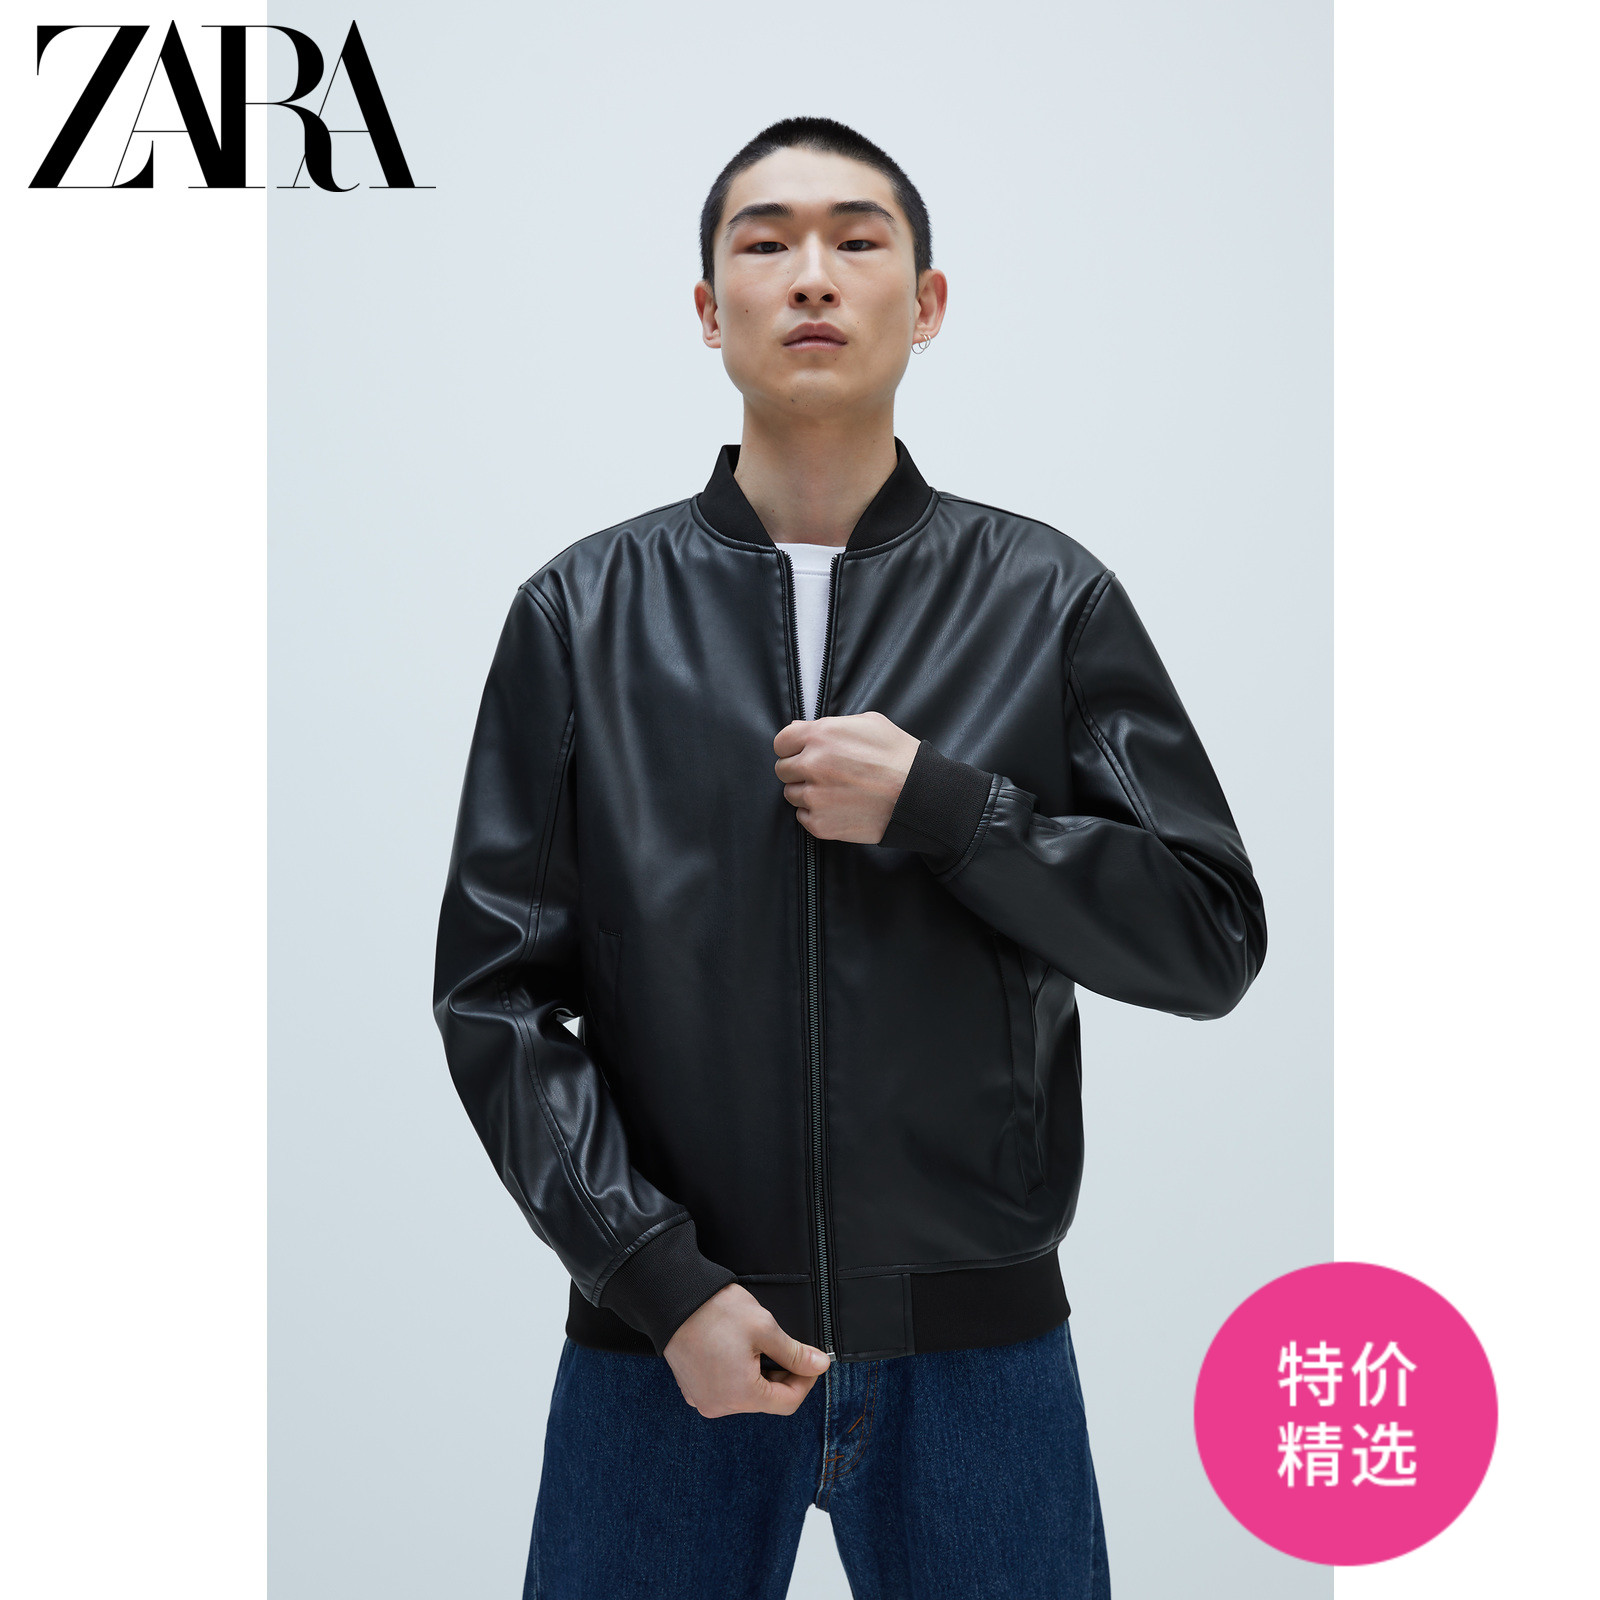 Zara new men's imitation leather pilot jacket 03918400800